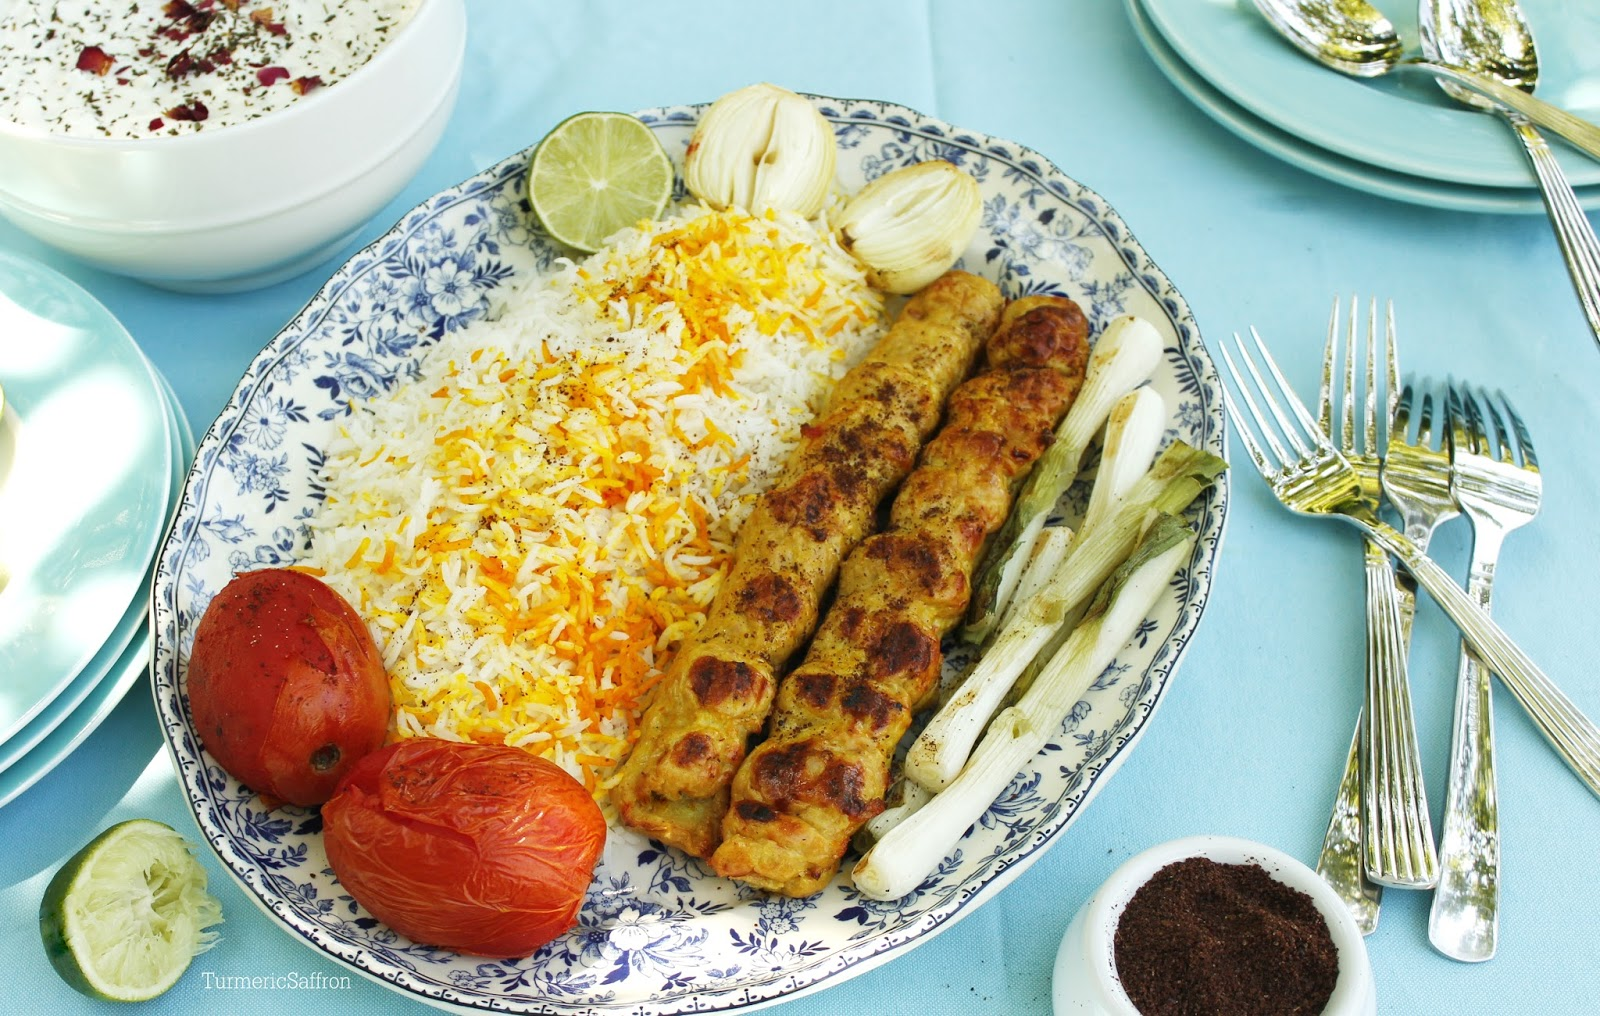 koobideh kabab Kabab koobideh (persian: کباب کوبیده ) or kūbide (persian: کوبیده ) is an iranian meat kabab made from ground lamb or beef, and less commonly chicken, often mixed with parsley and chopped onions.